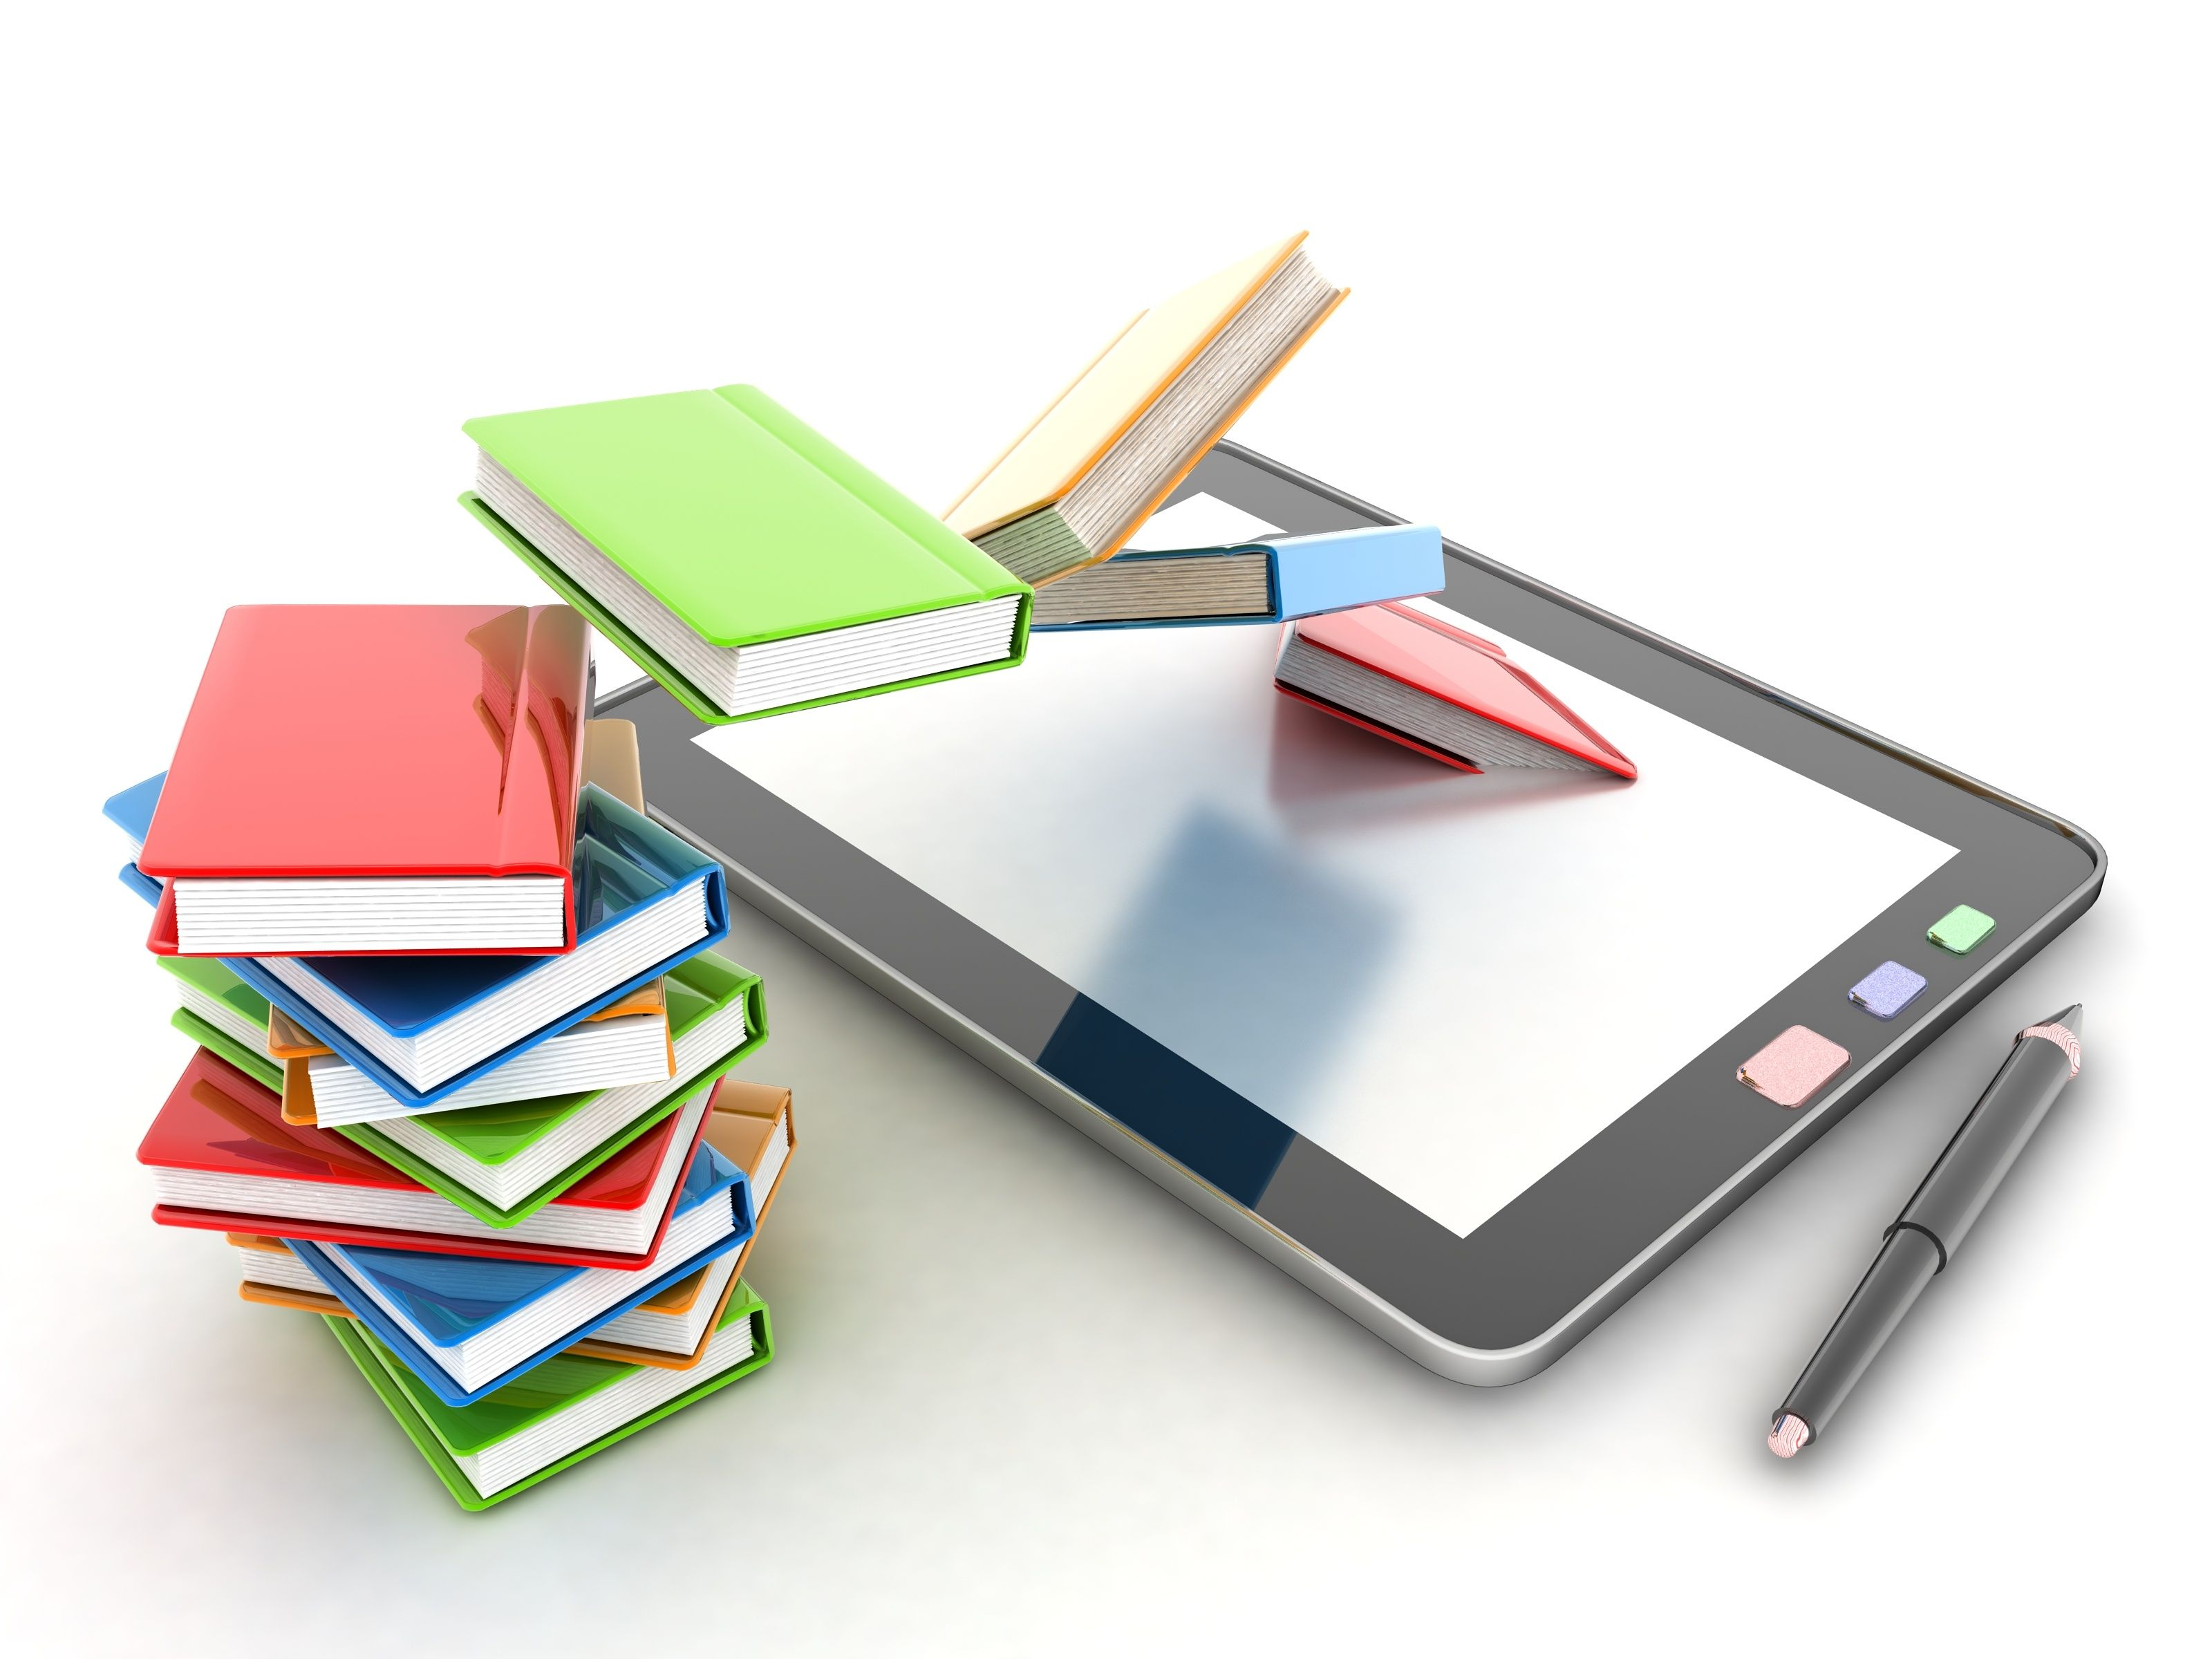 DC Tablet with Books illustration